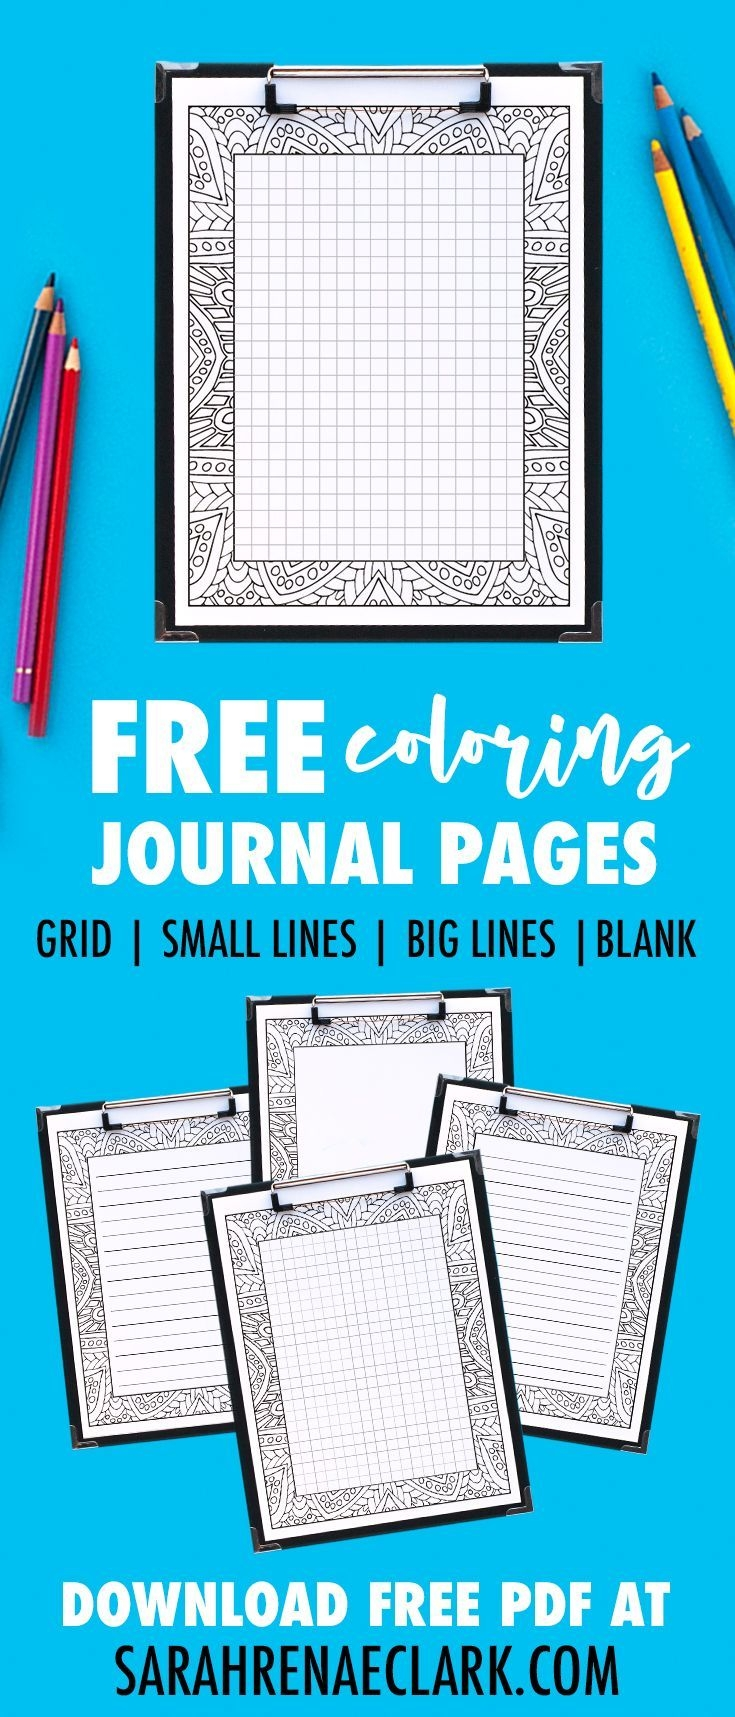 Free Printable Coloring Journal Pages (With Images